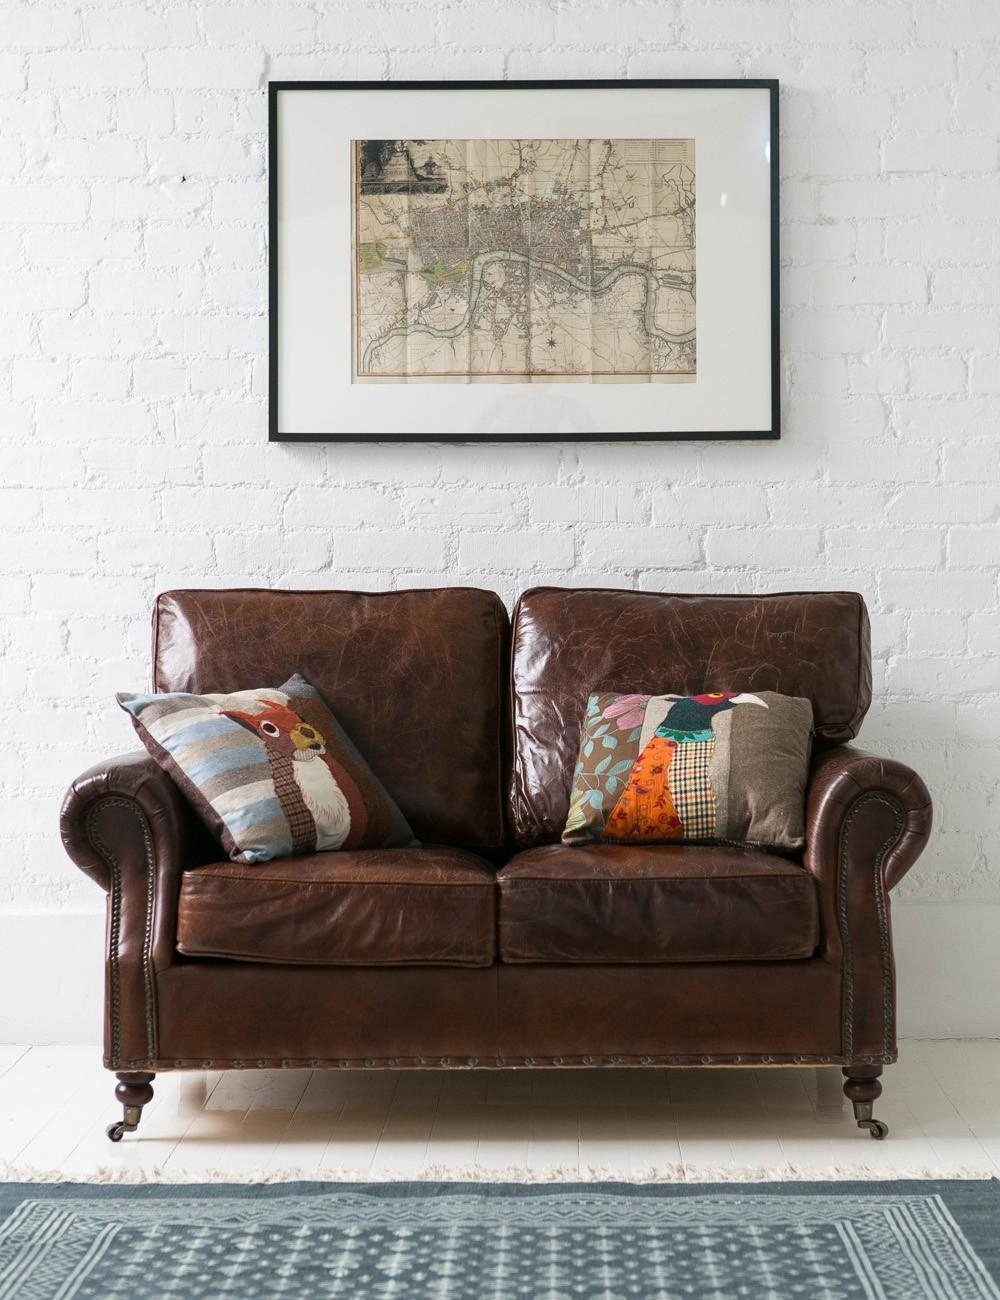 Vintage Leather Sofa – 2 Seater | Rose & Grey Pertaining To Vintage Leather Sofa Beds (View 8 of 20)